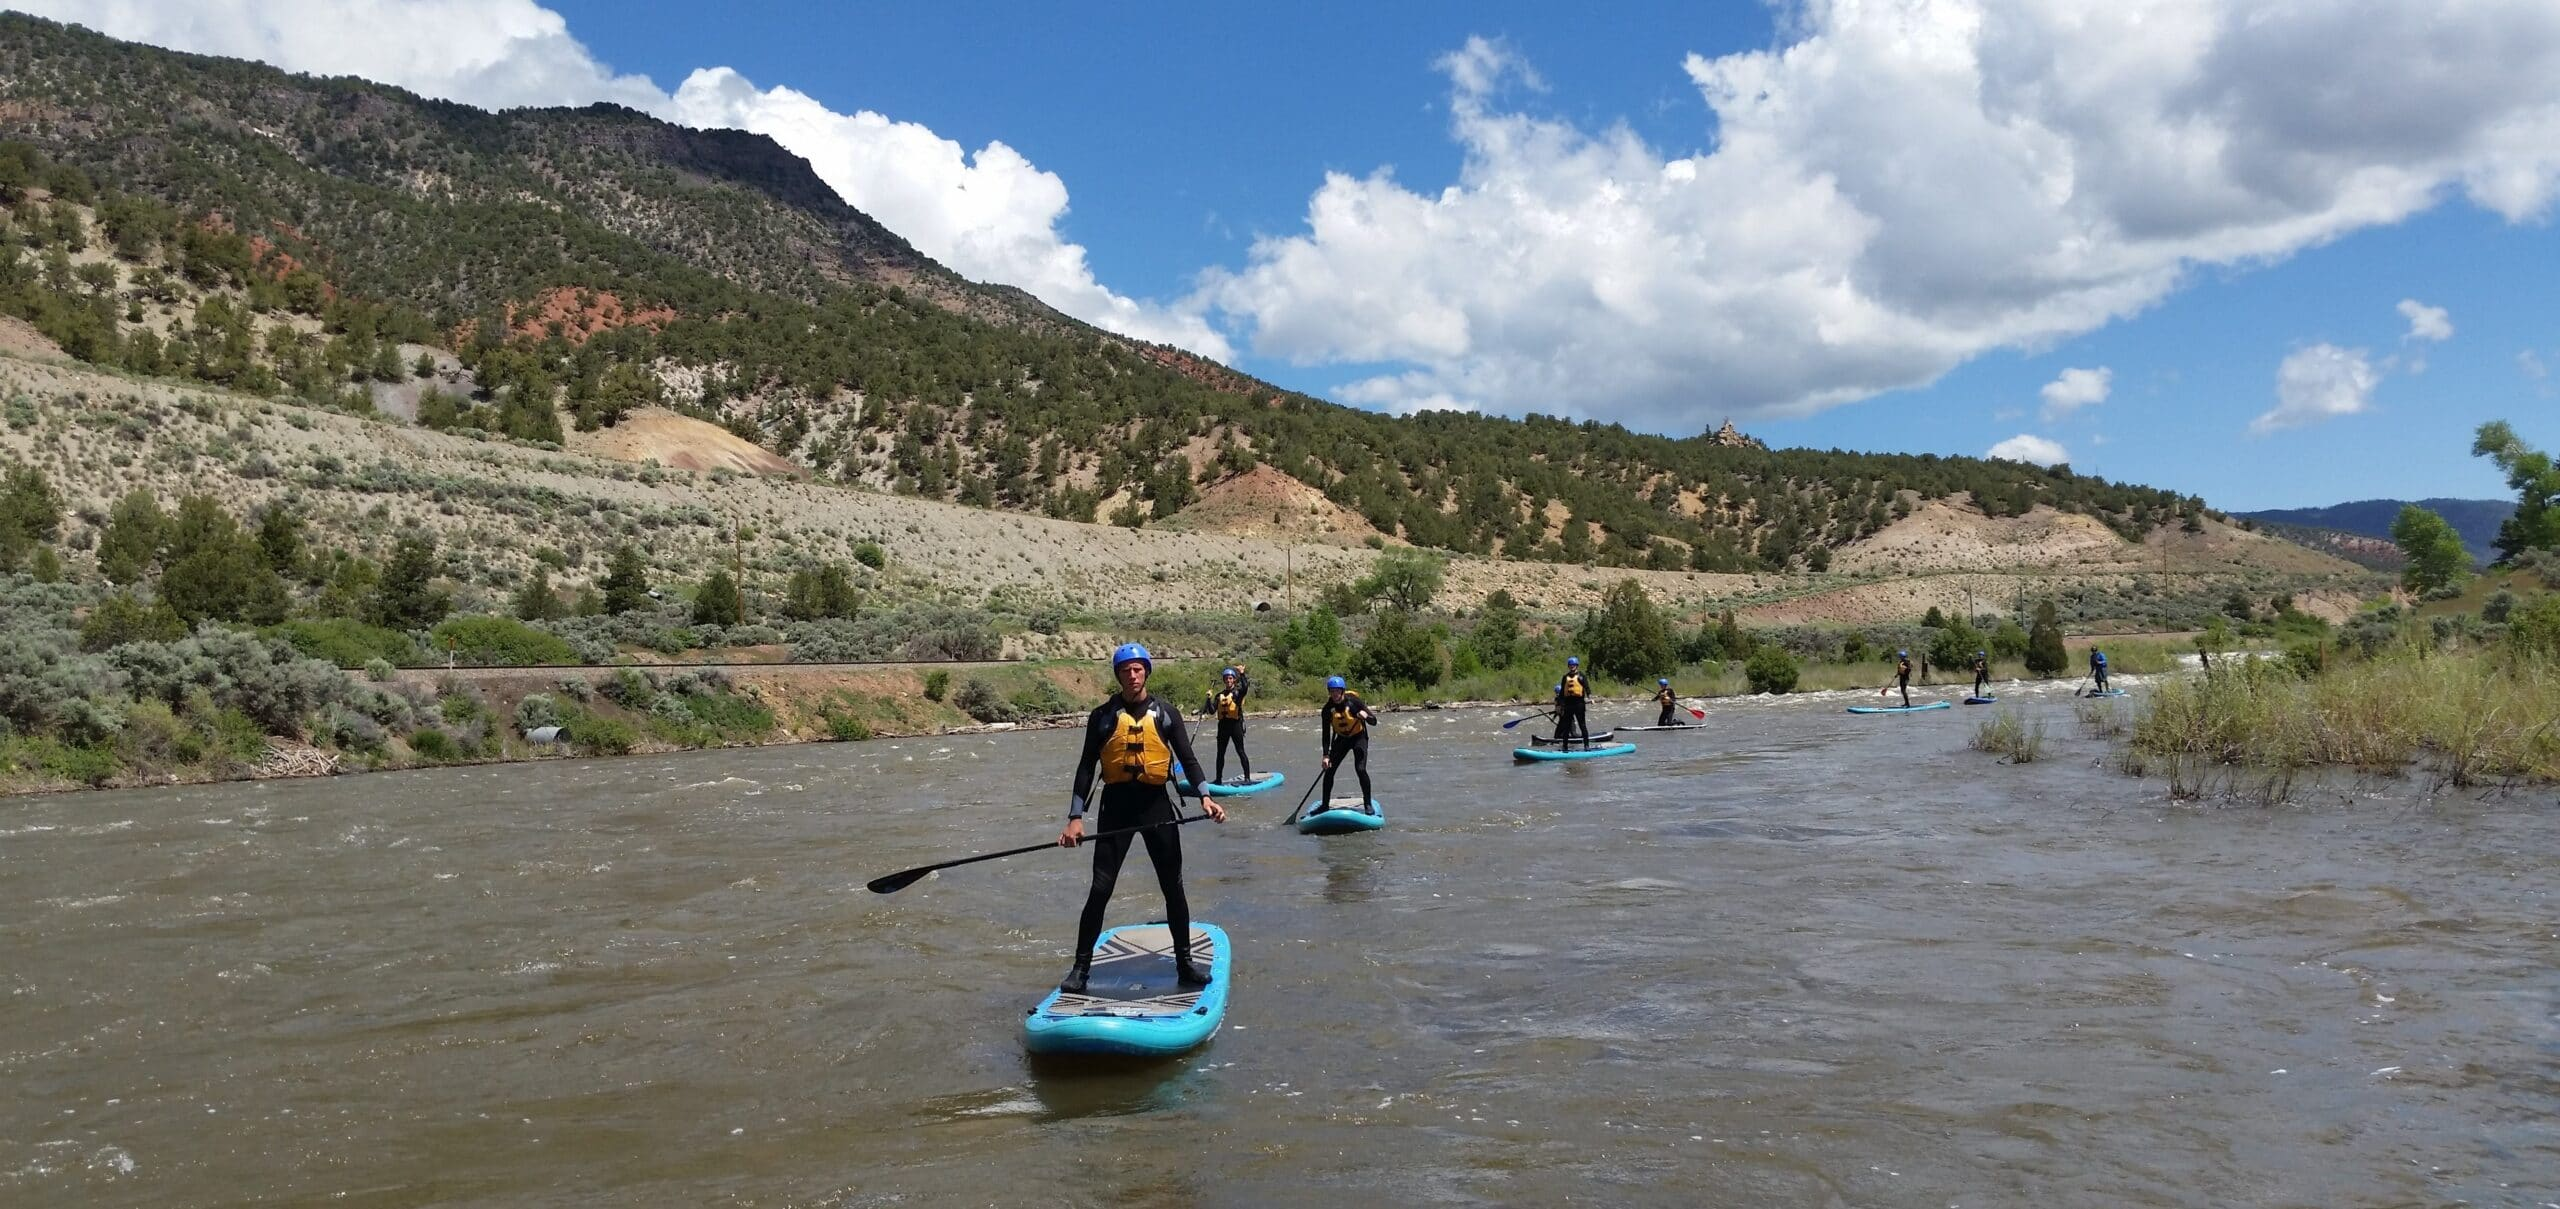 SUP Board Tours on the Arkansas River.